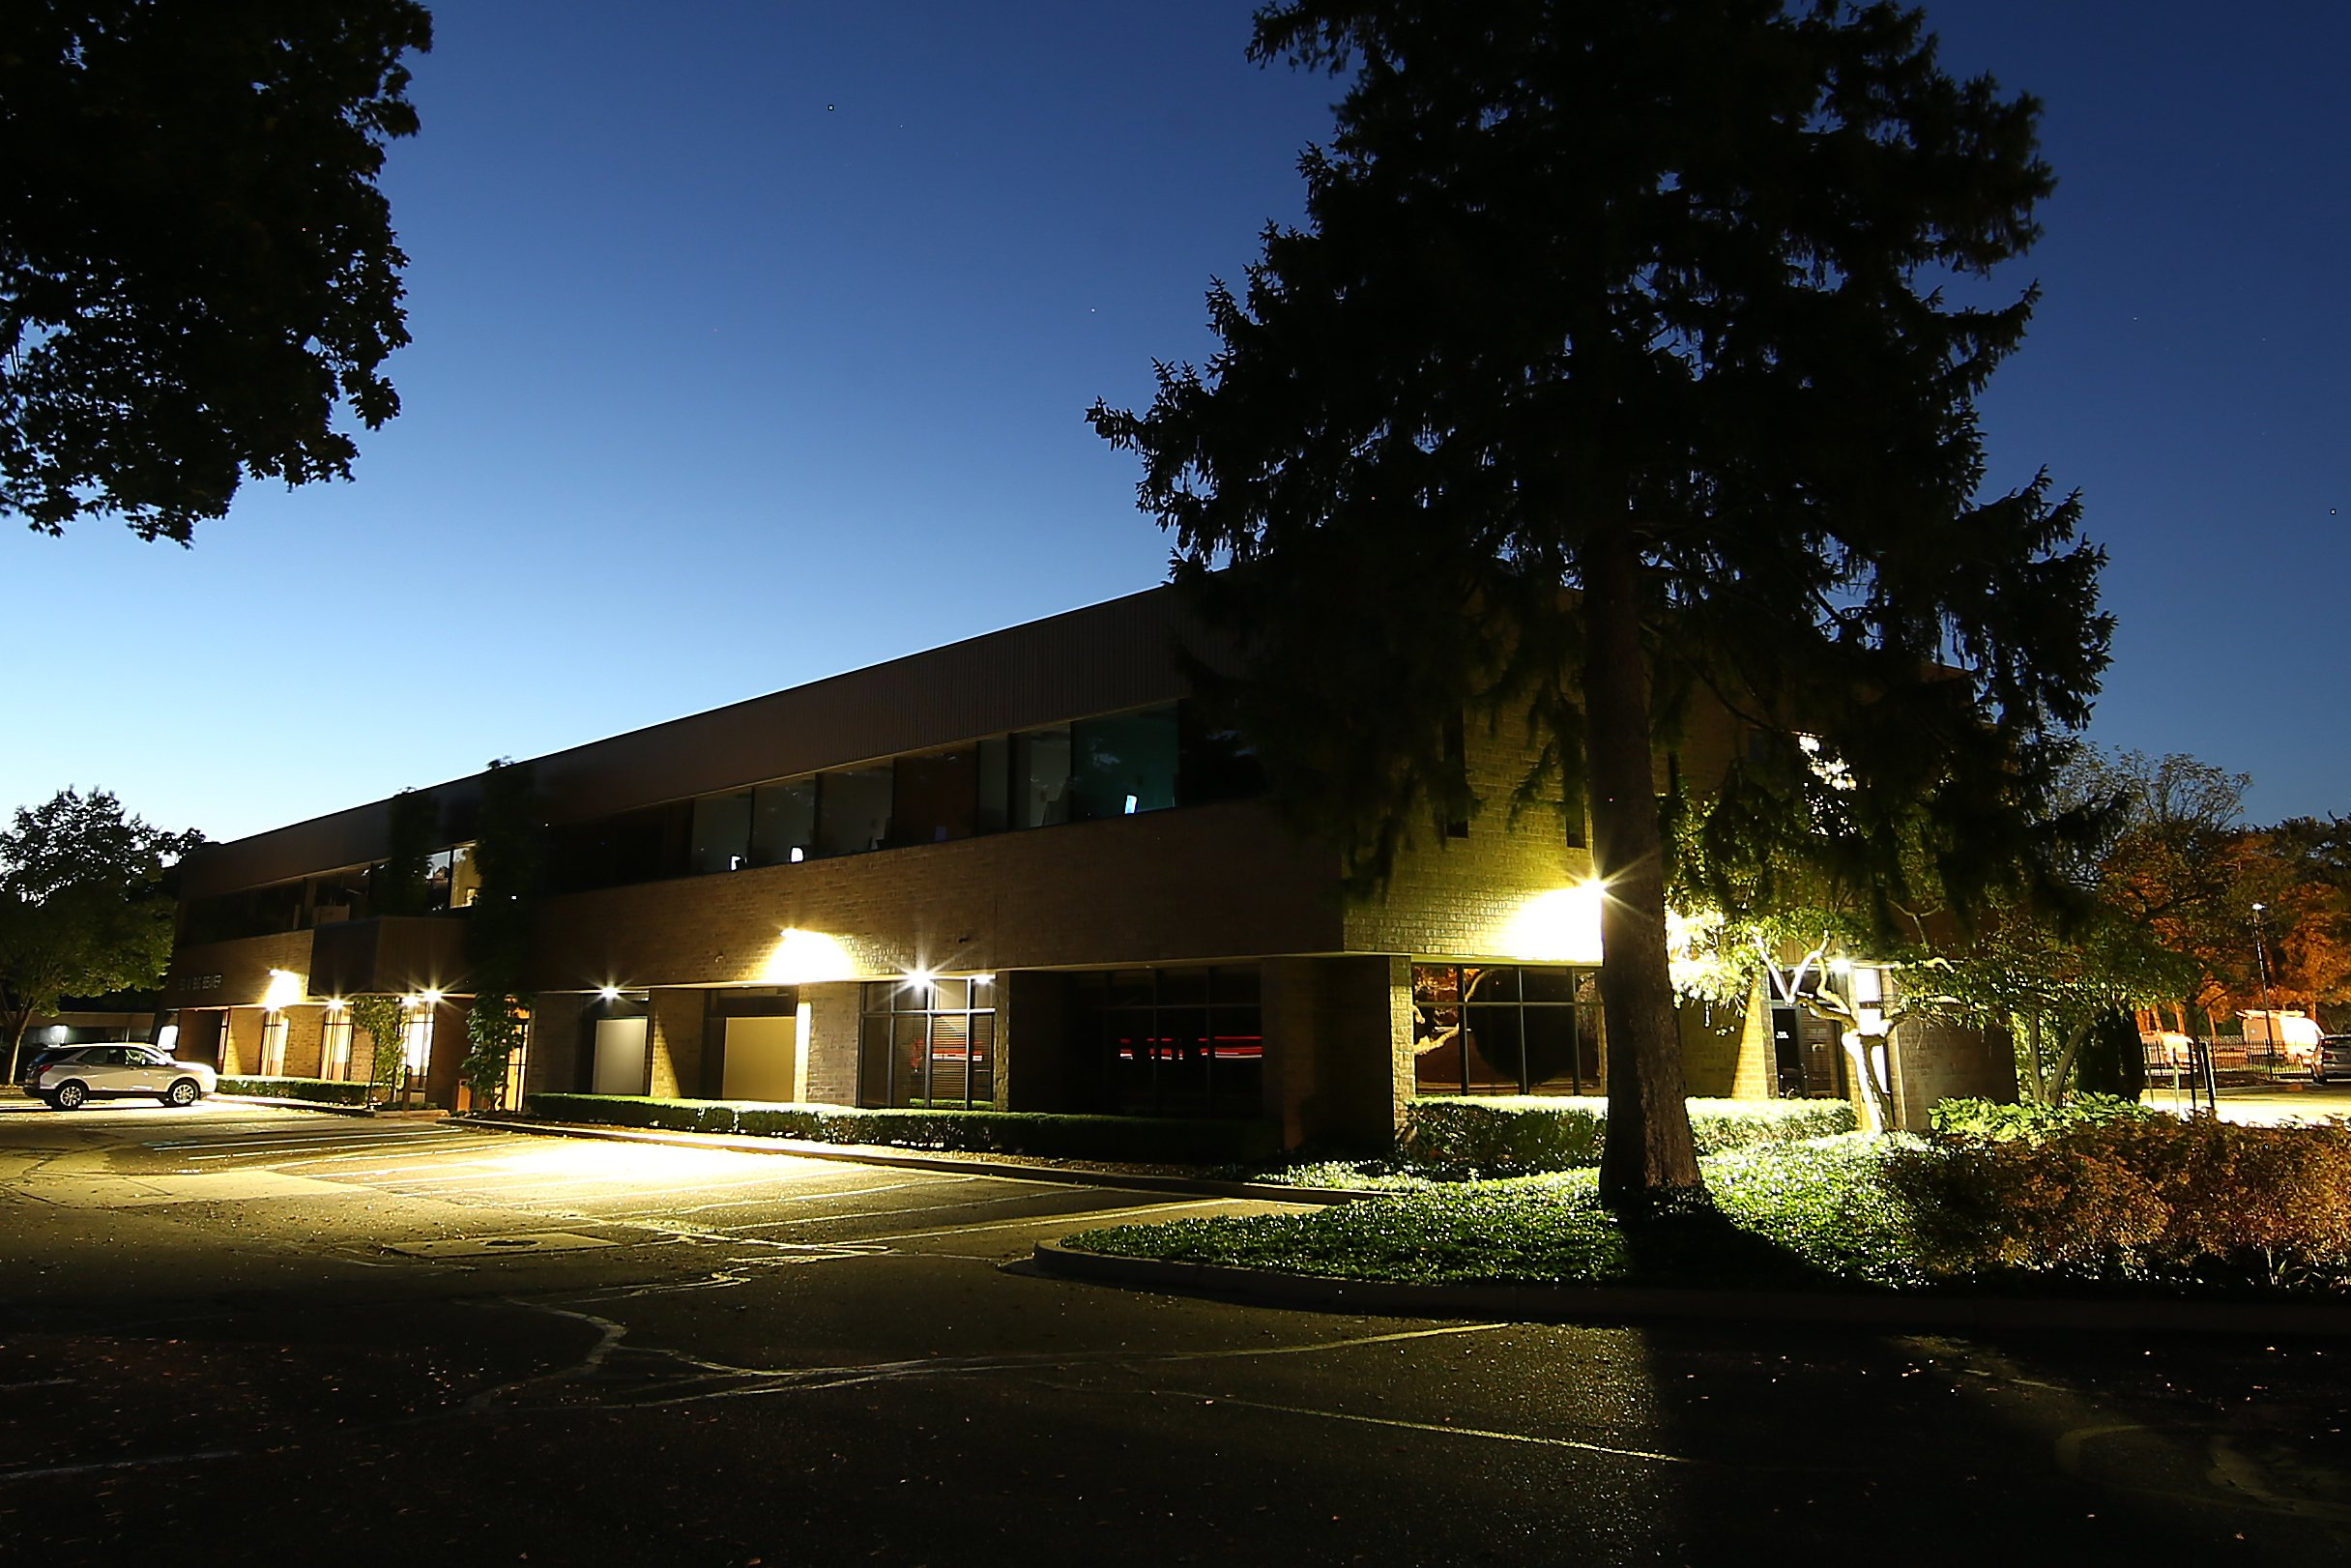 Electro-Matic Upgrades Lighting for all Dietz Commercial Properties